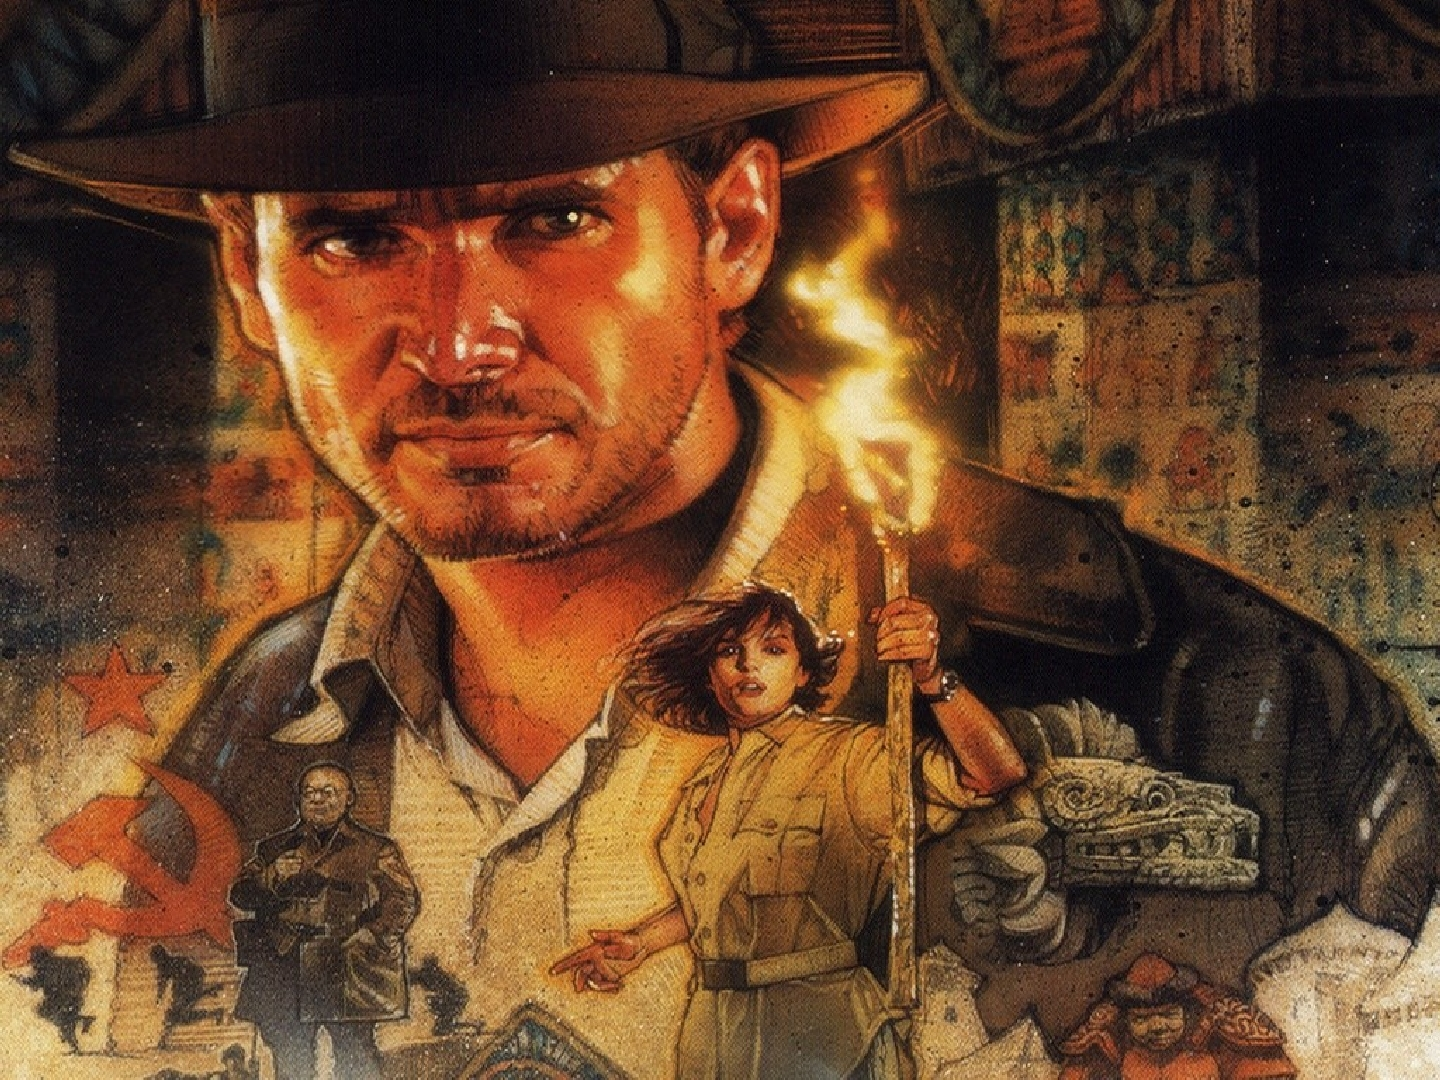 Raiders Of The Lost Ark Wallpaper Image Group (33+)